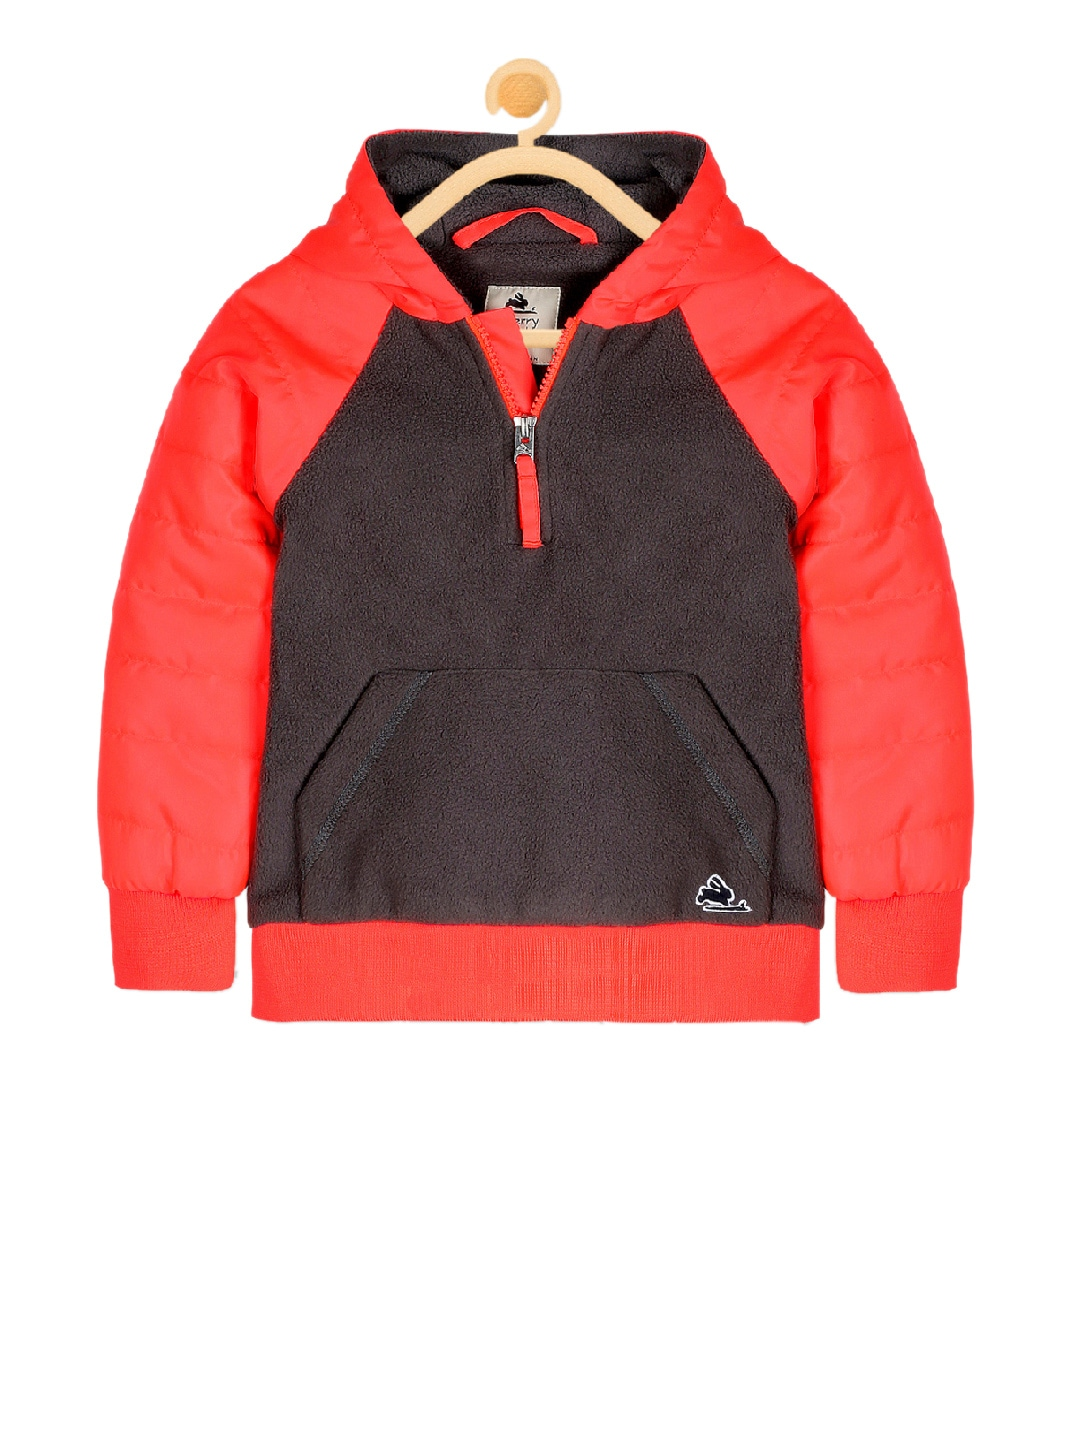 Cherry Crumble Jackets Buy Cherry Crumble Jackets Online In India